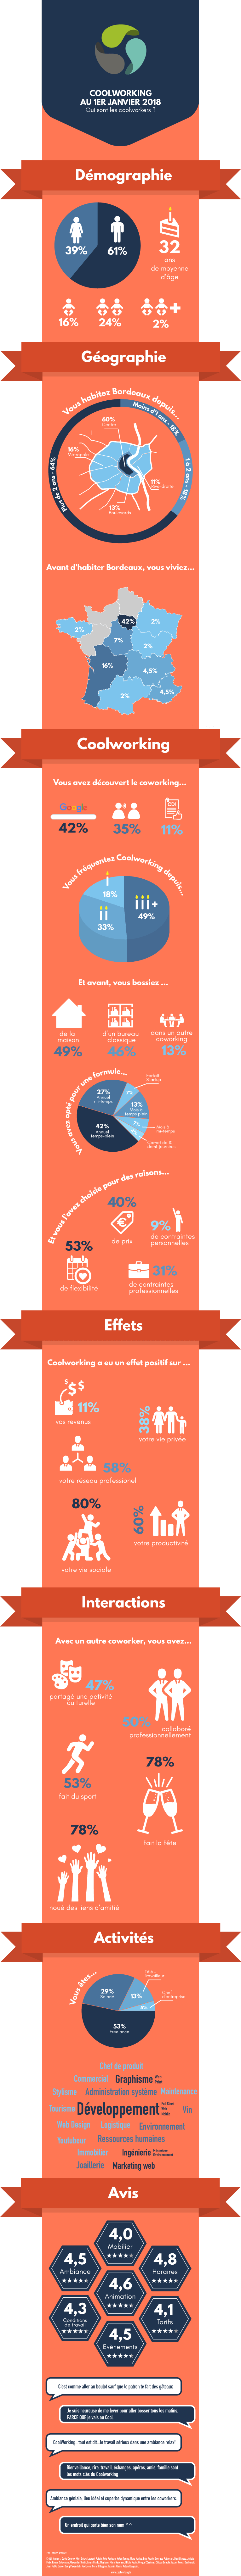 infographie coolworking 2018